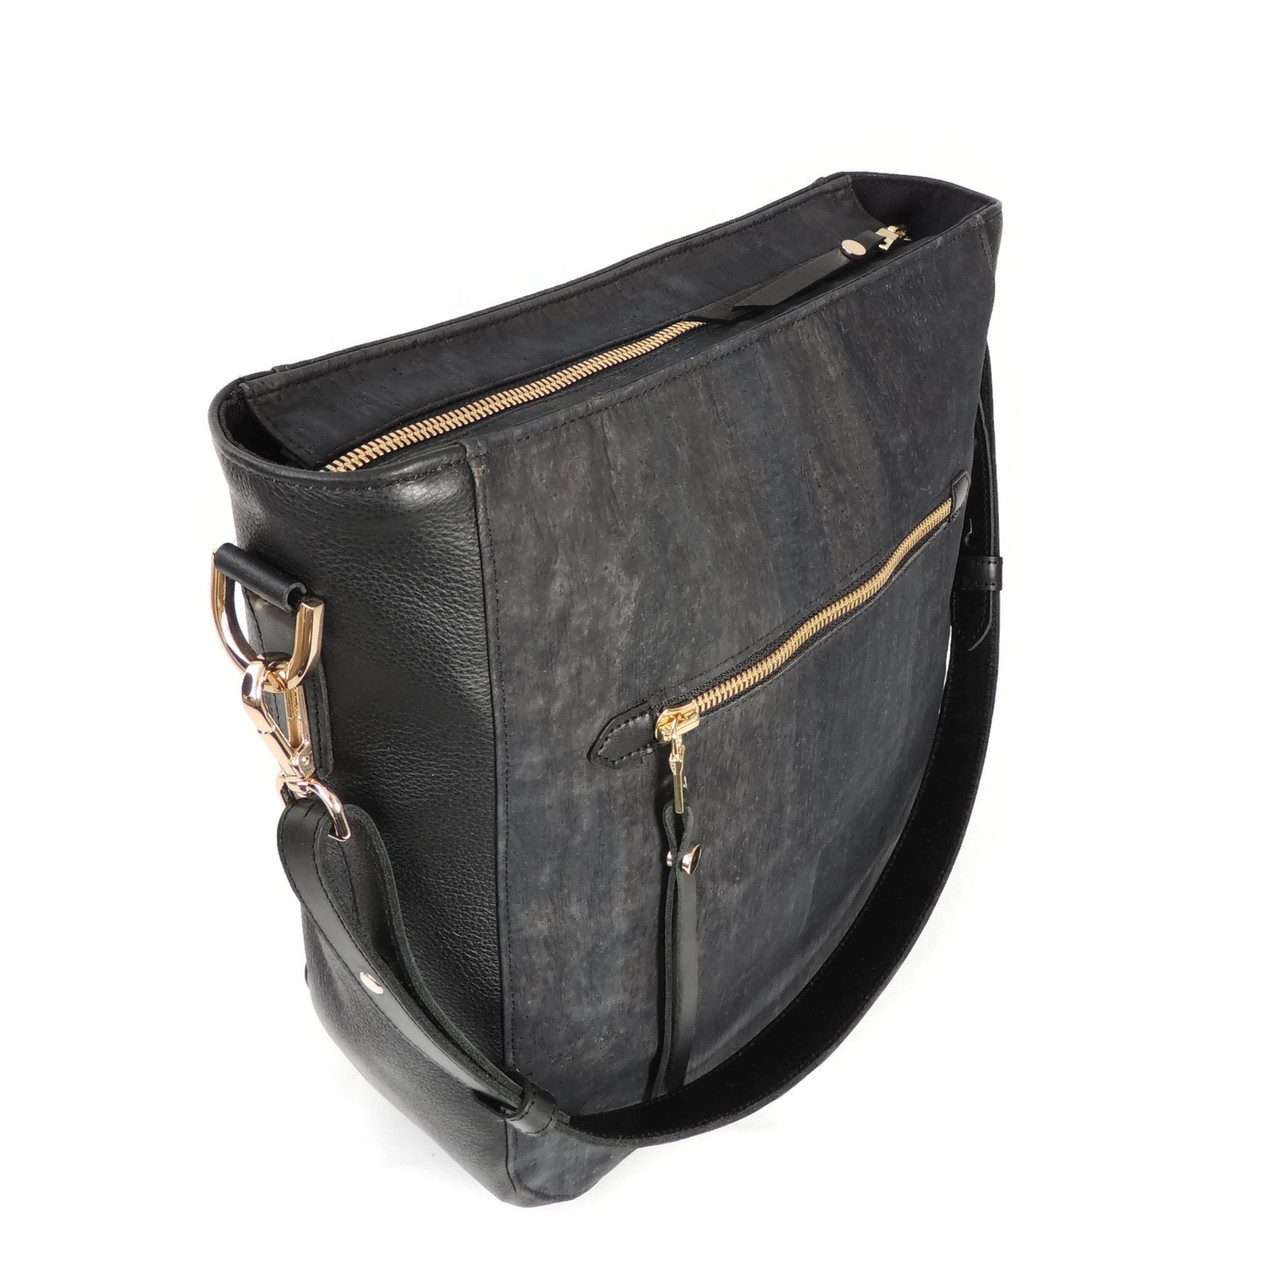 Hobo Purse in Black Cork